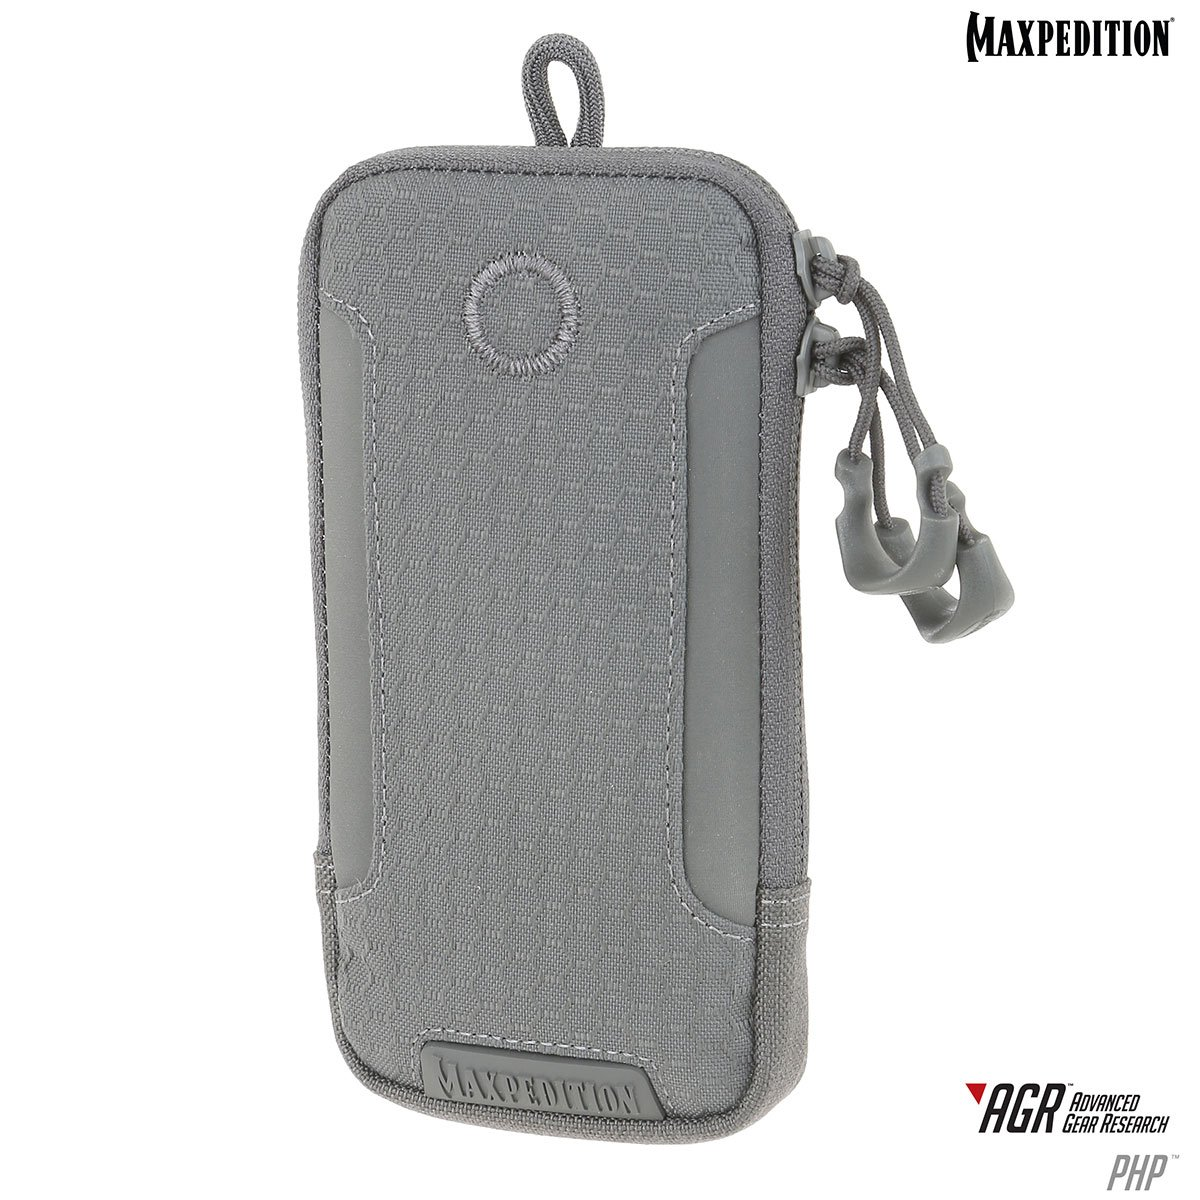 Maxpedition PHP iPhone 6 Pouch – Gray